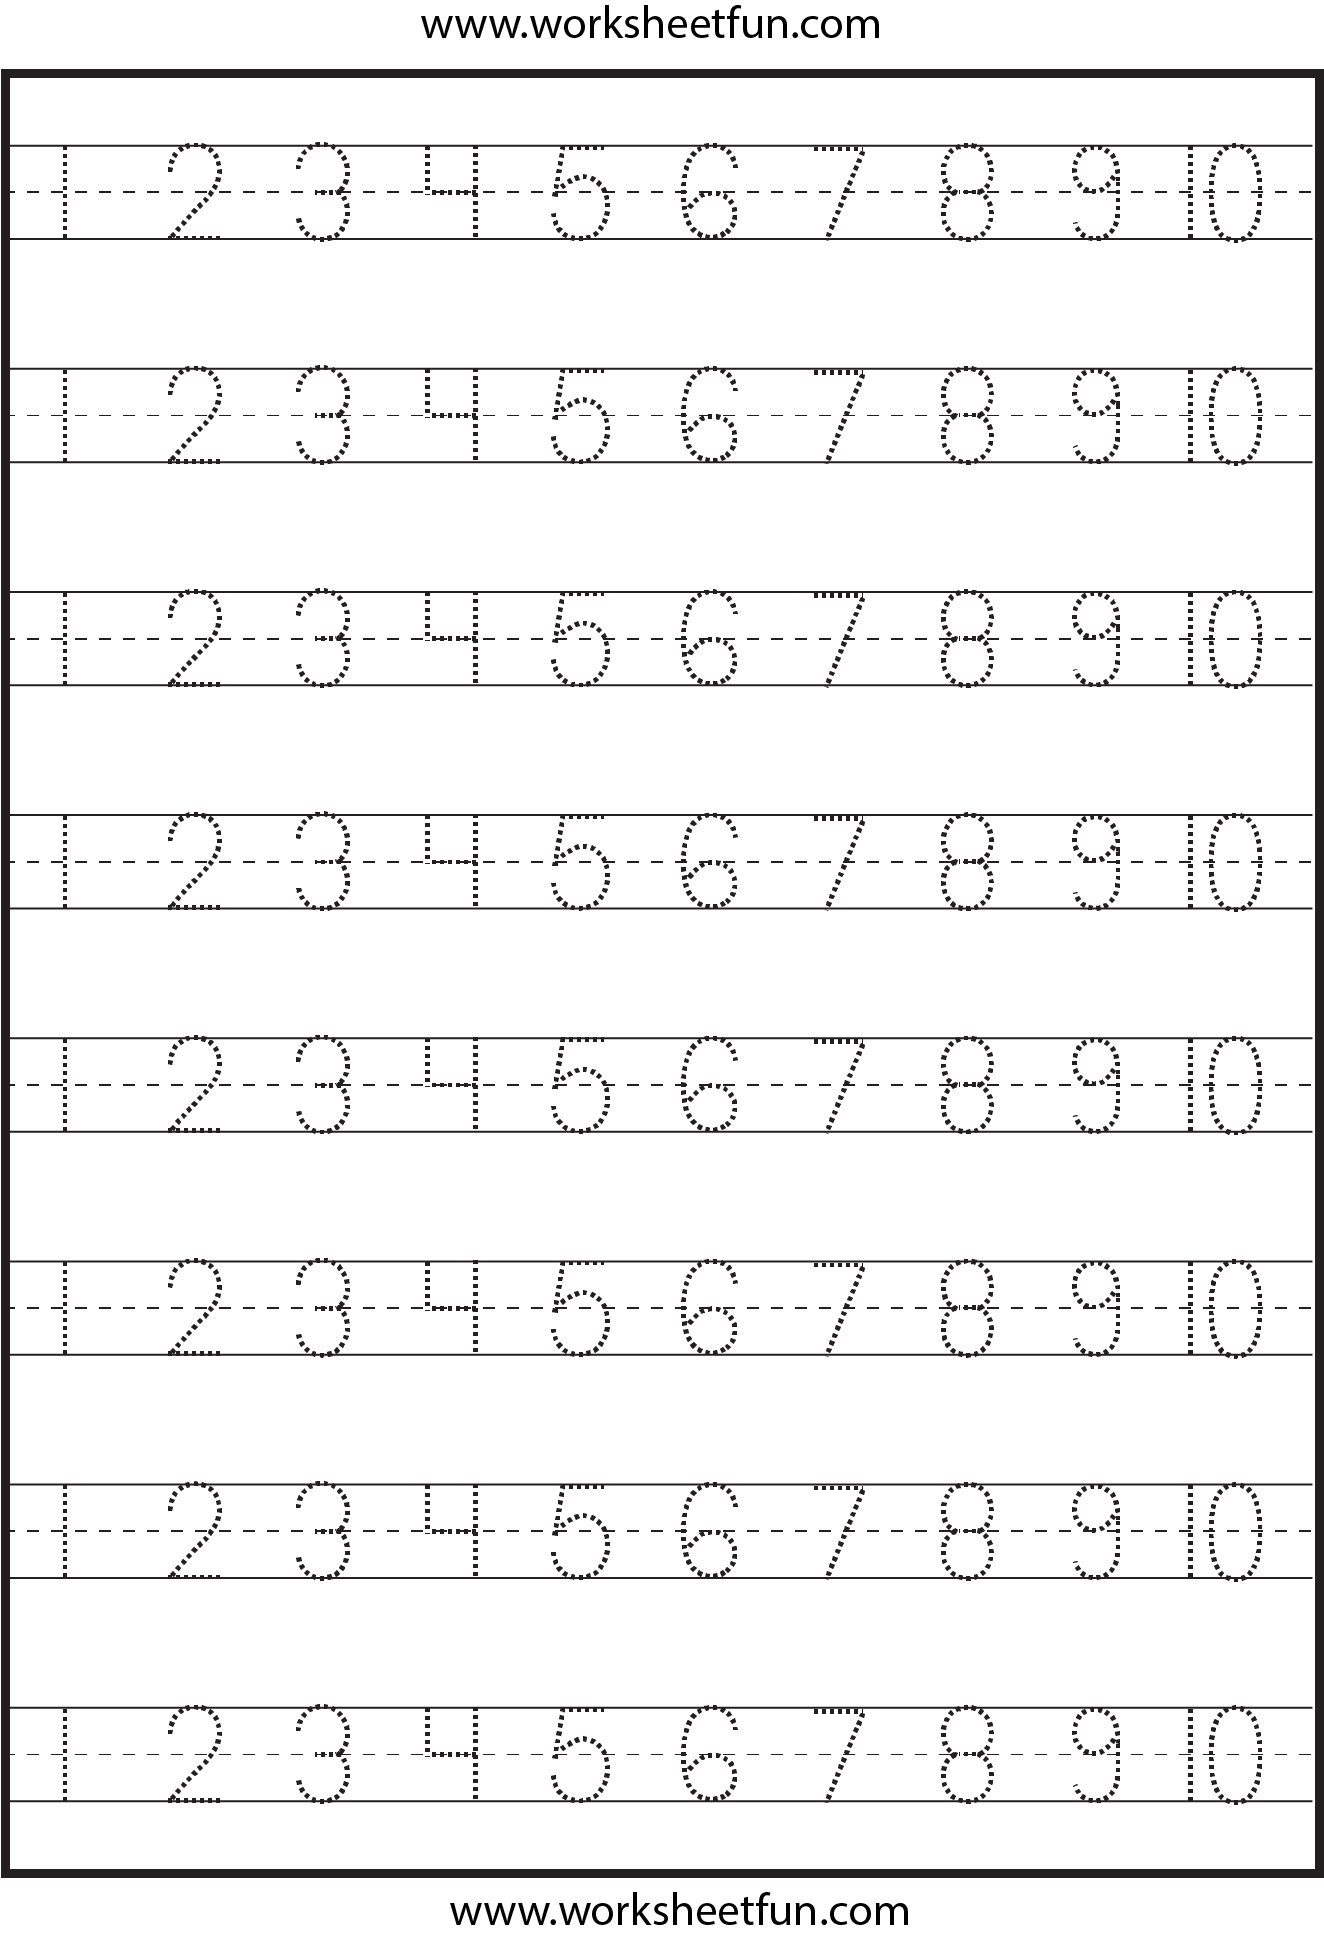 Printables Number Tracing Worksheets 1-10 number tracing 1 10 worksheet free printable worksheets tracing